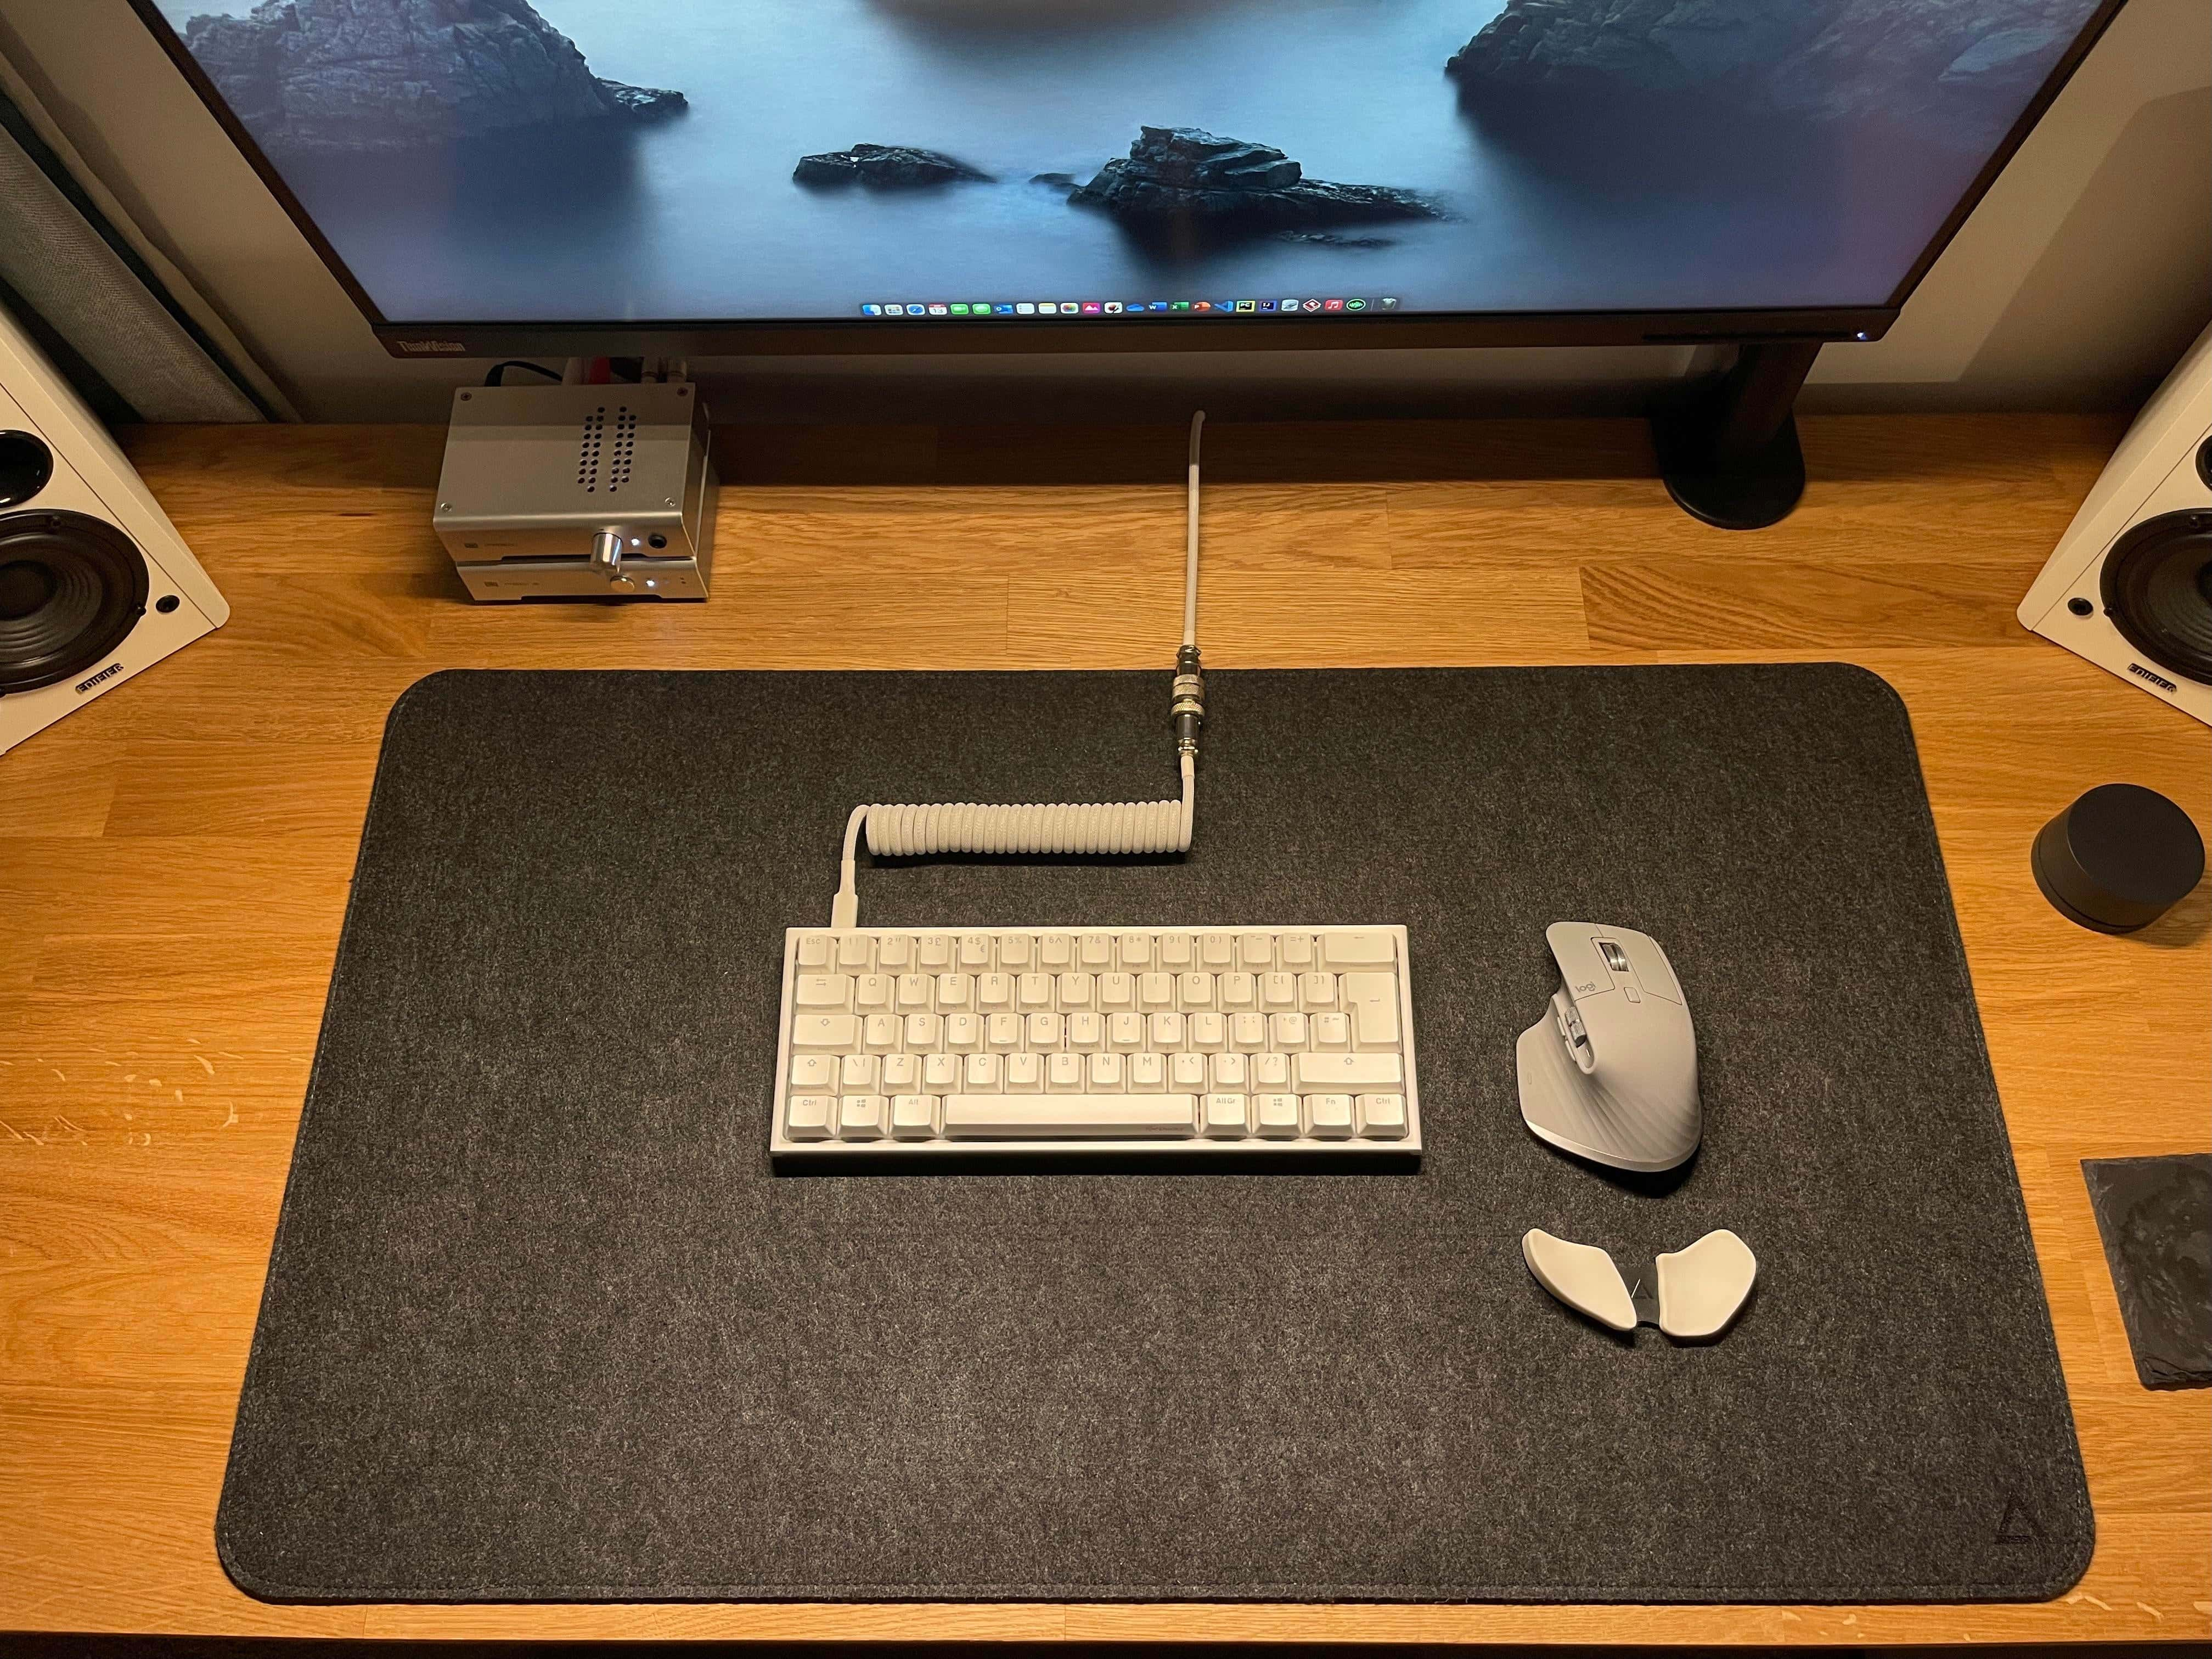 You don't see that ergonomic wrist rest for the mouse and that coiled cable for the keyboard every day.